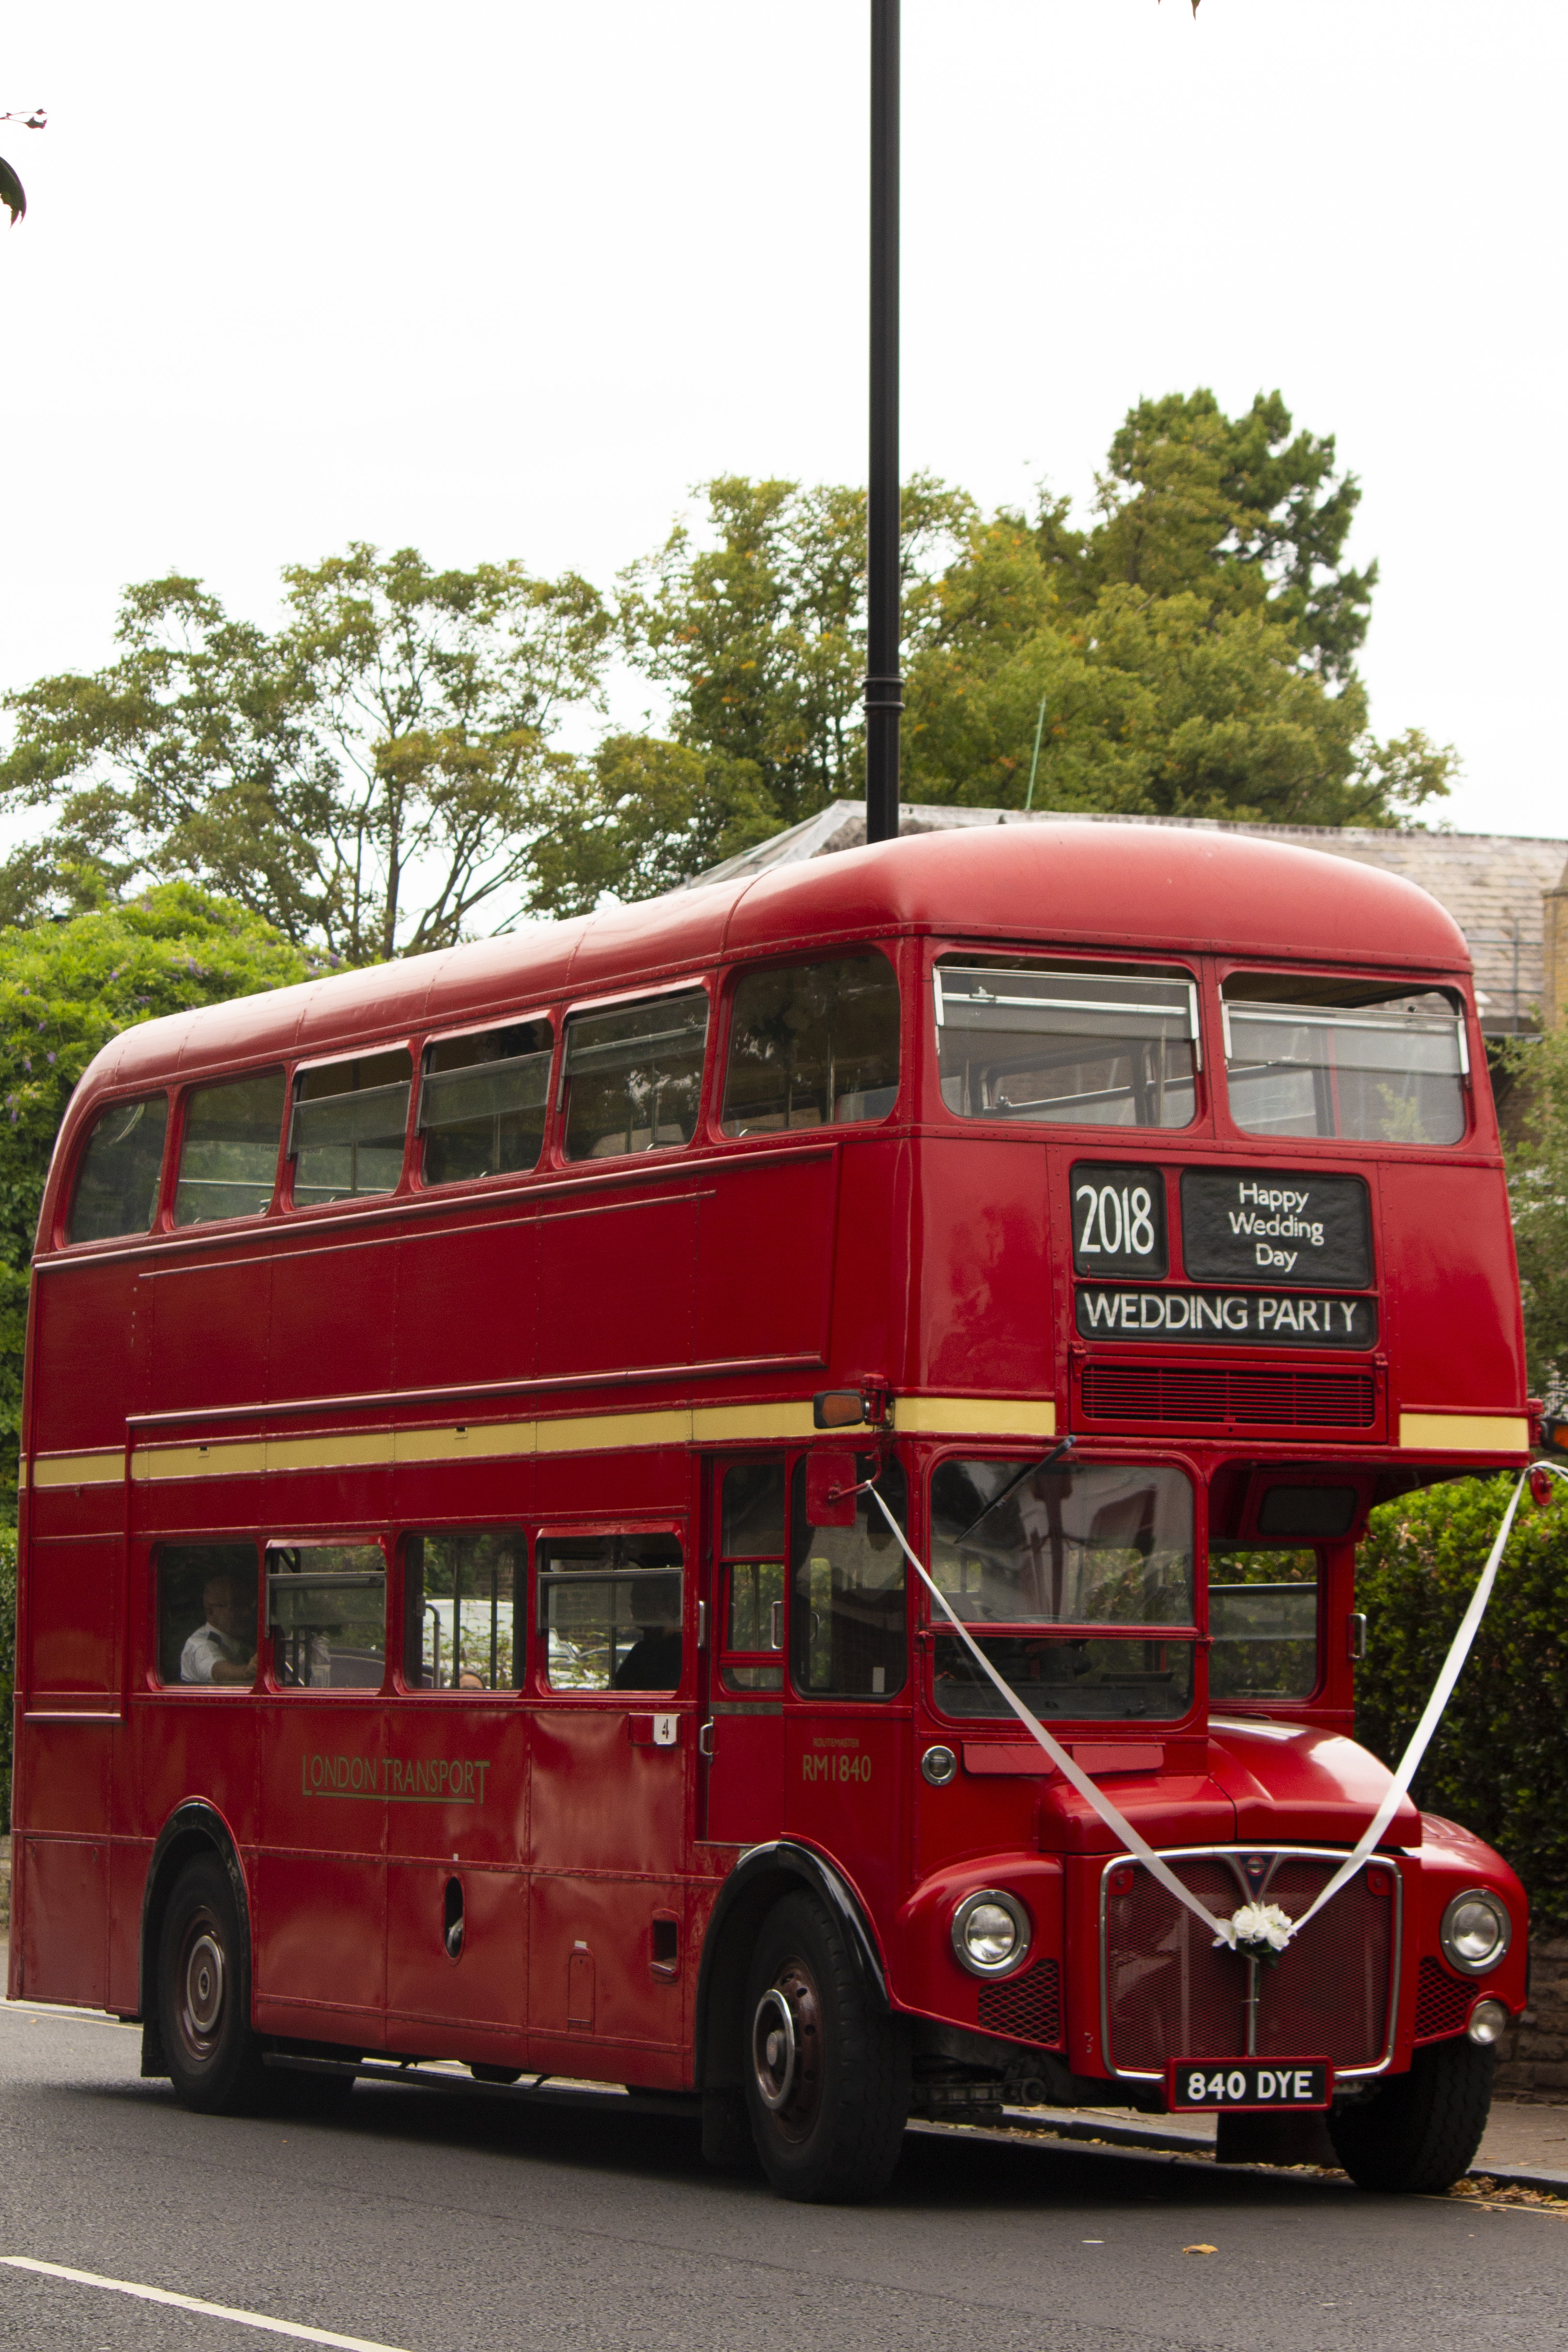 red Wedding Party double decker bus on road near trees and house